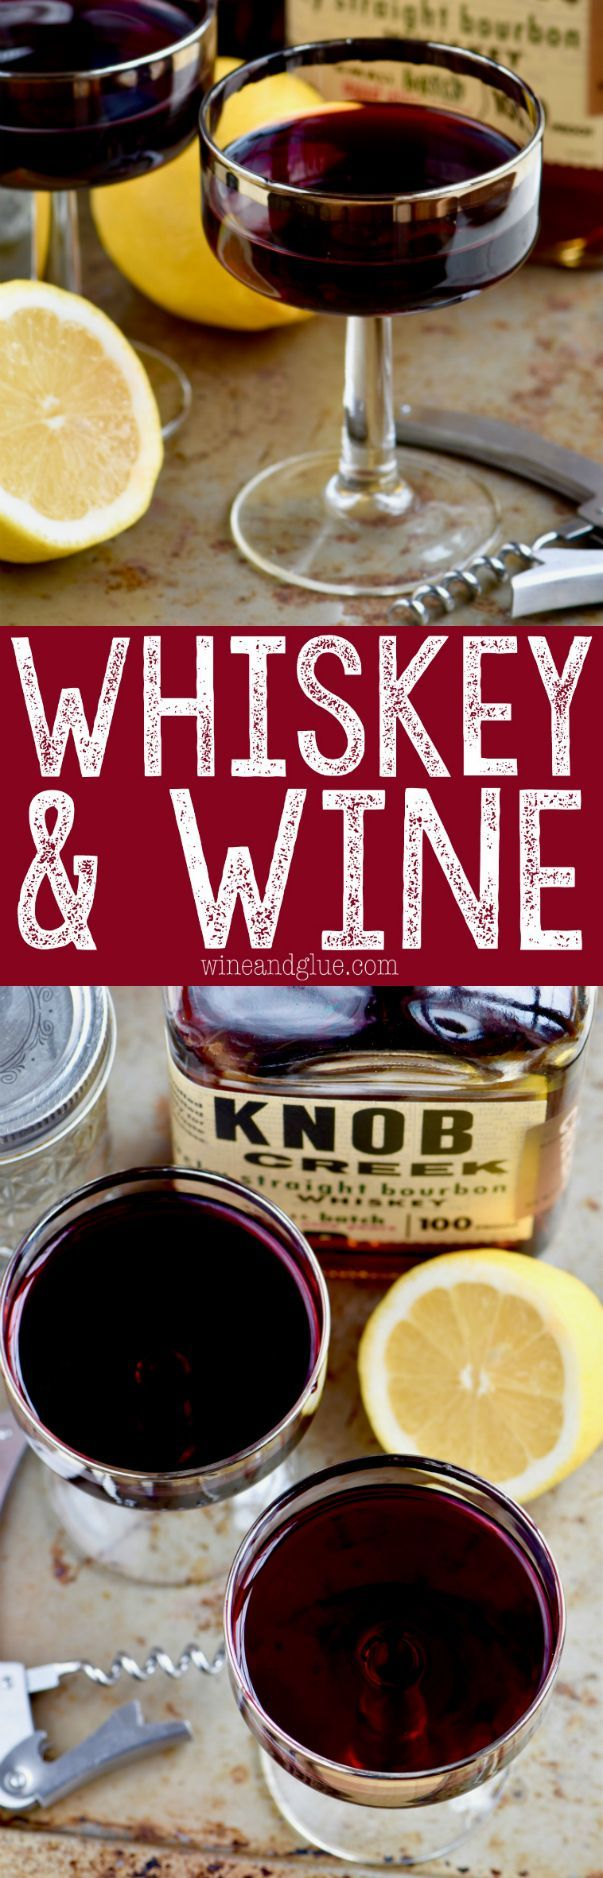 This Whiskey And Wine Cocktail Is The Most Unexpected Amazing Combination Ever Try It And You Will Be Hooked Yummy Drinks Whiskey Drinks Wine Drinks